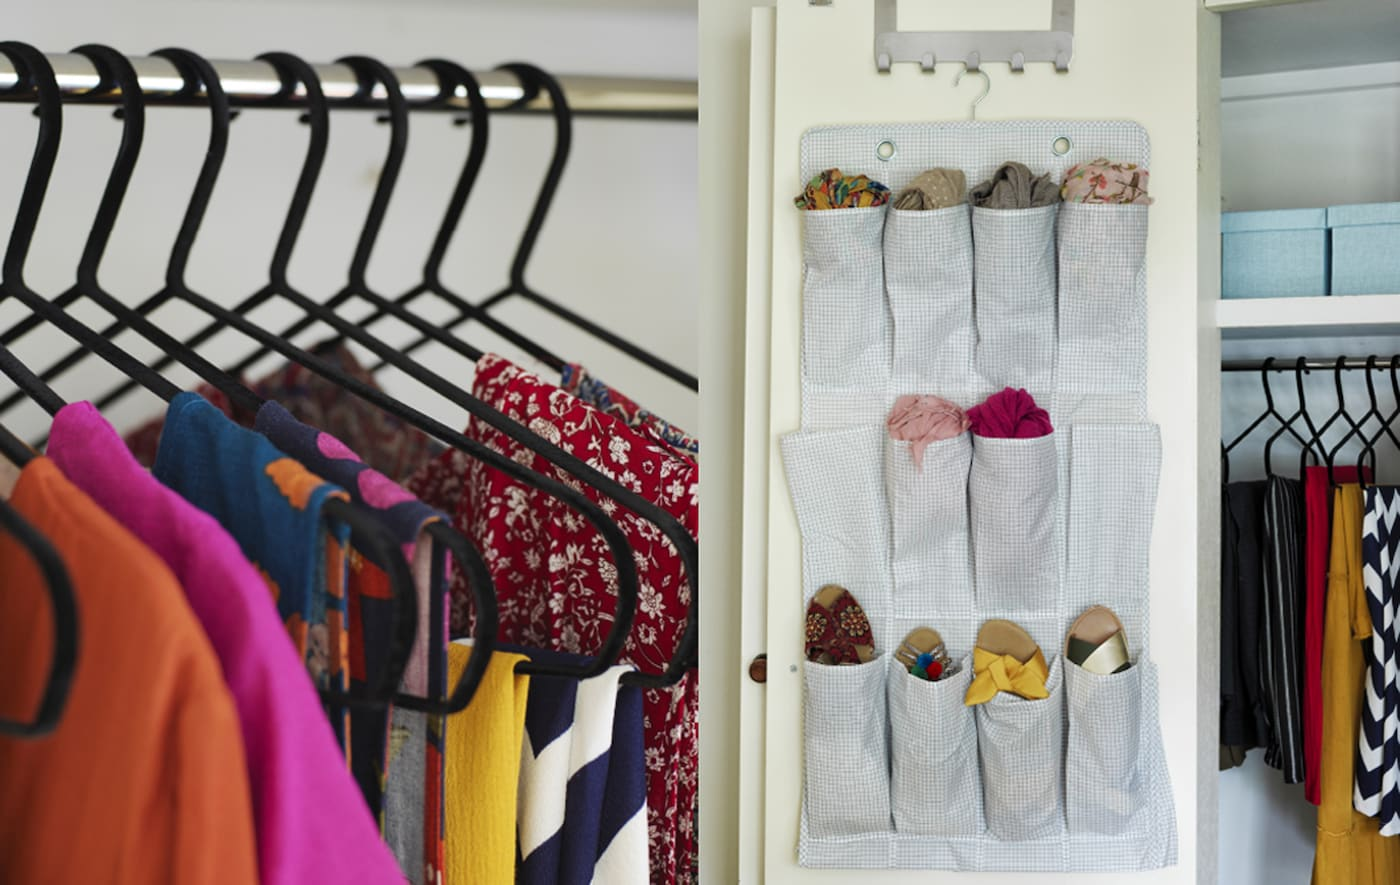 Black hangers inside a wardrobe with colourful clothes and accessories stored in a hanging shoe organiser inside a wardrobe door.